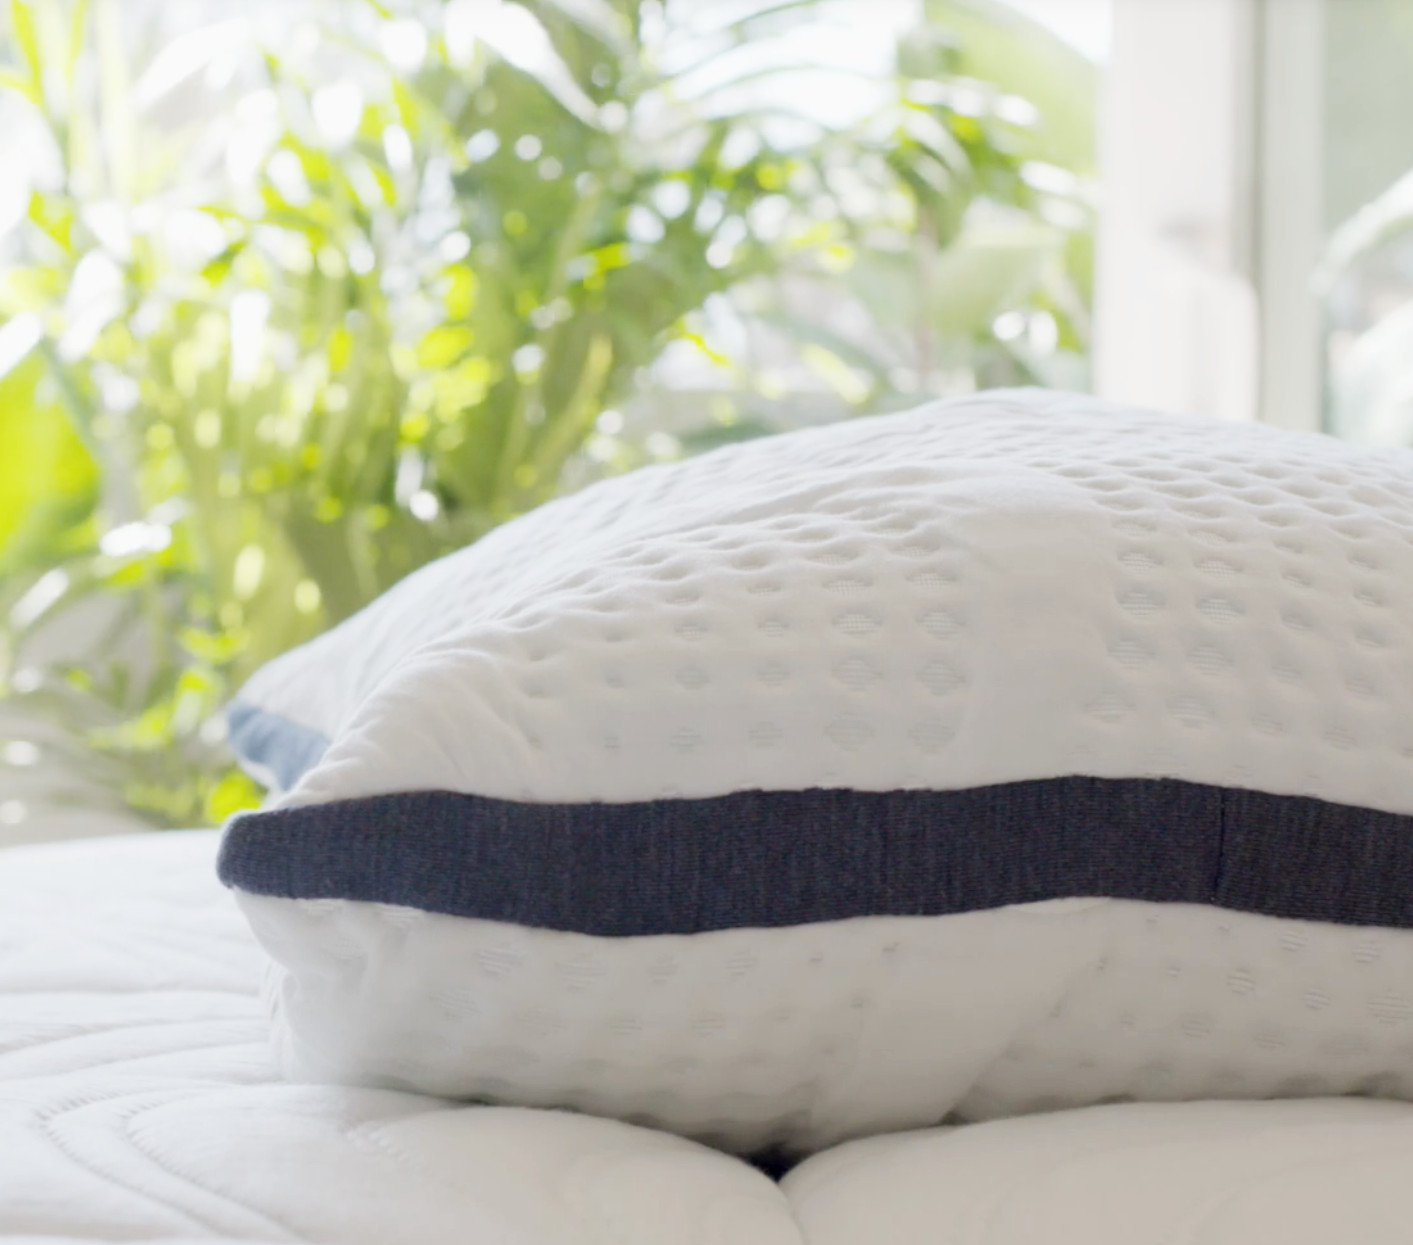 brentwood home oceano pillow review